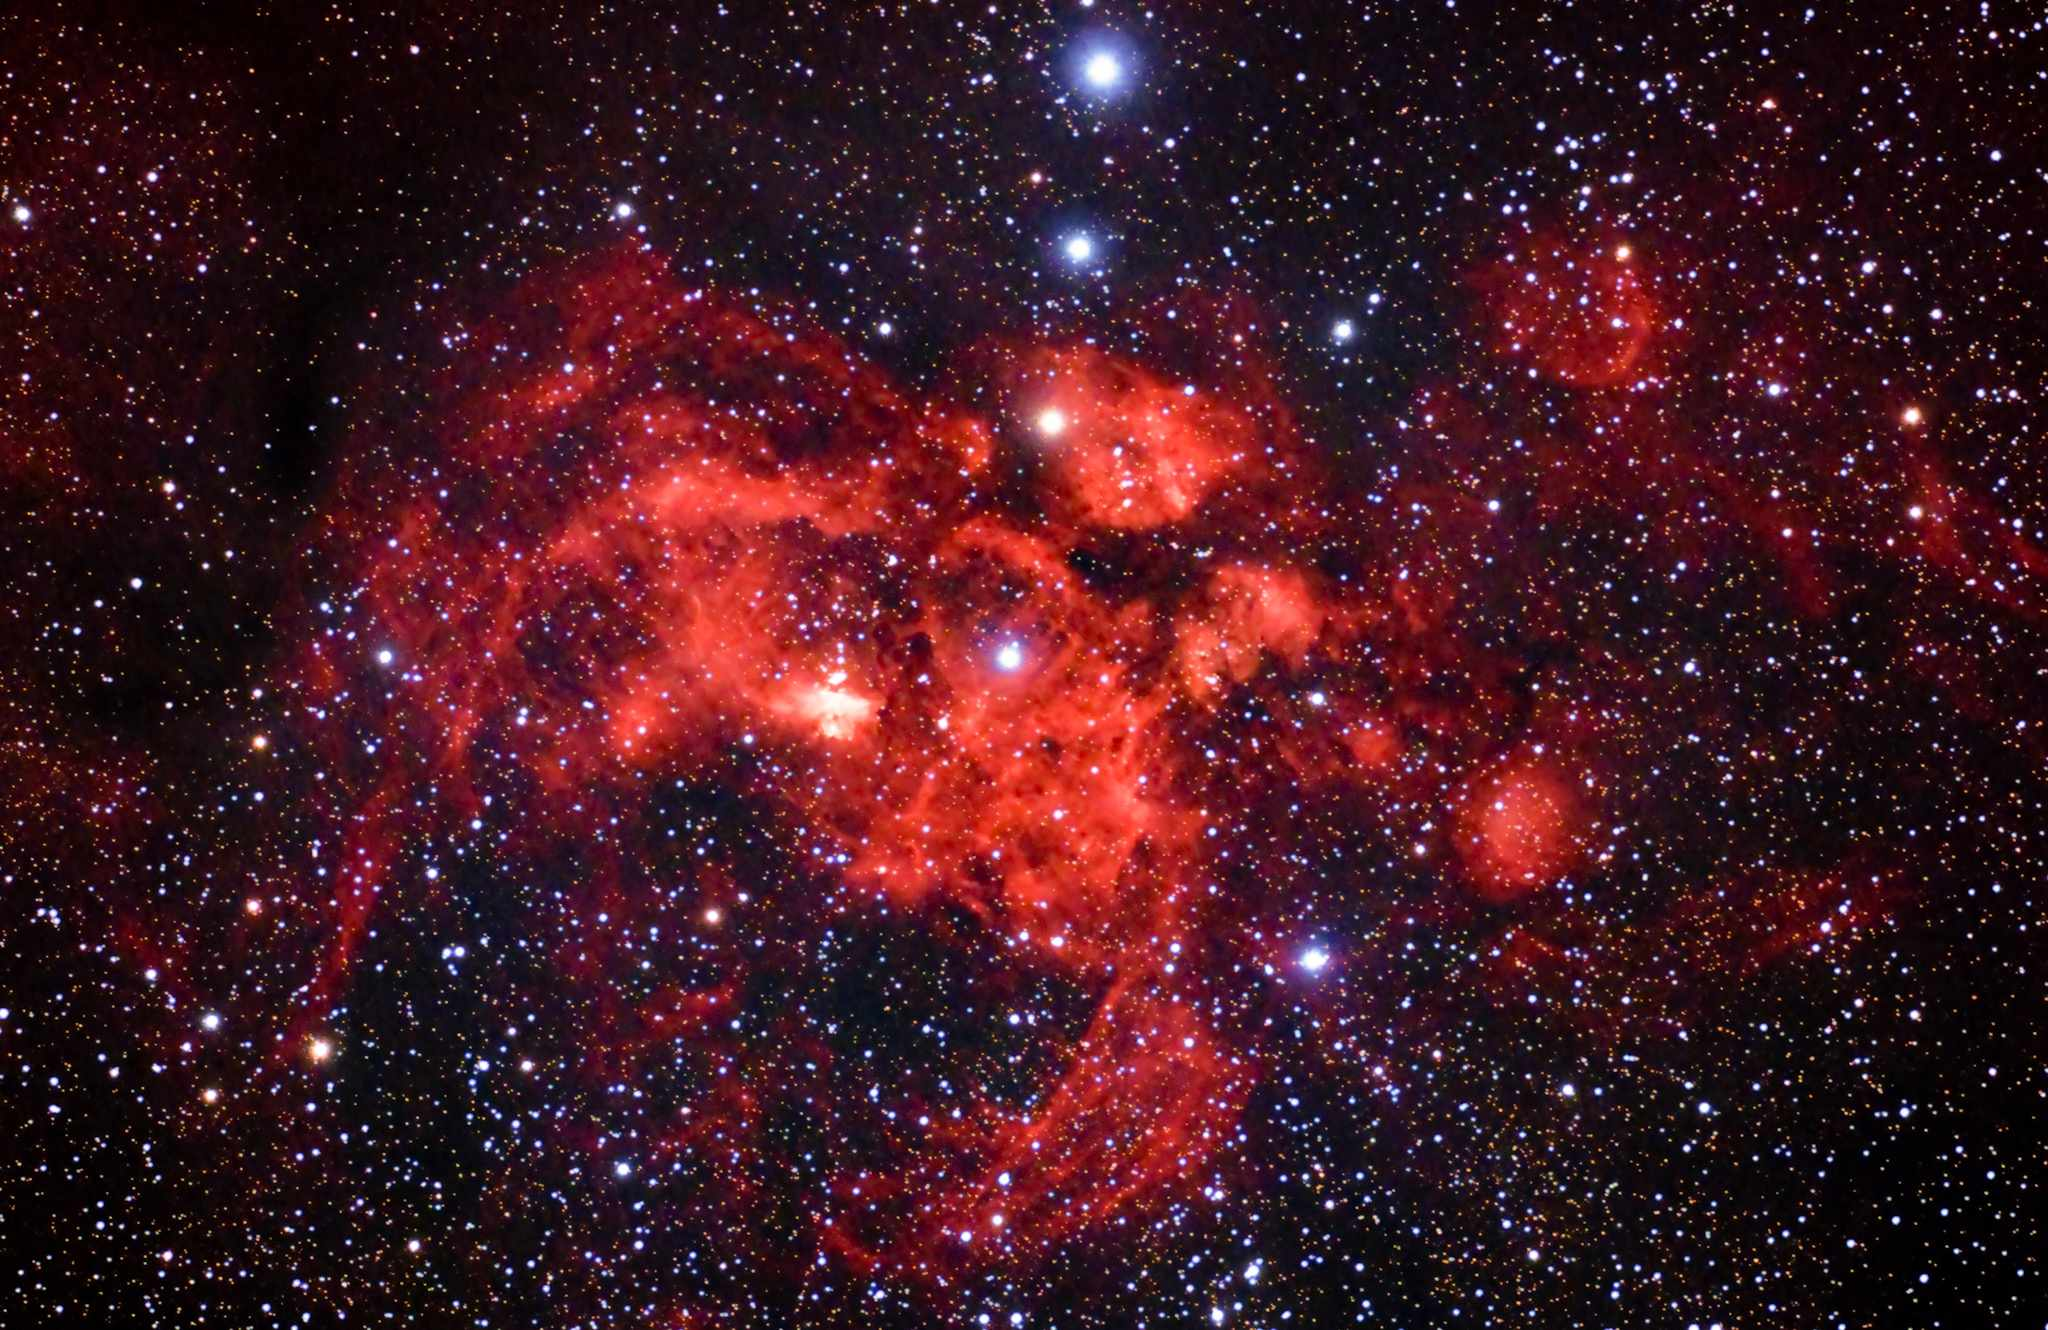 Pictures of the Lobster Nebula